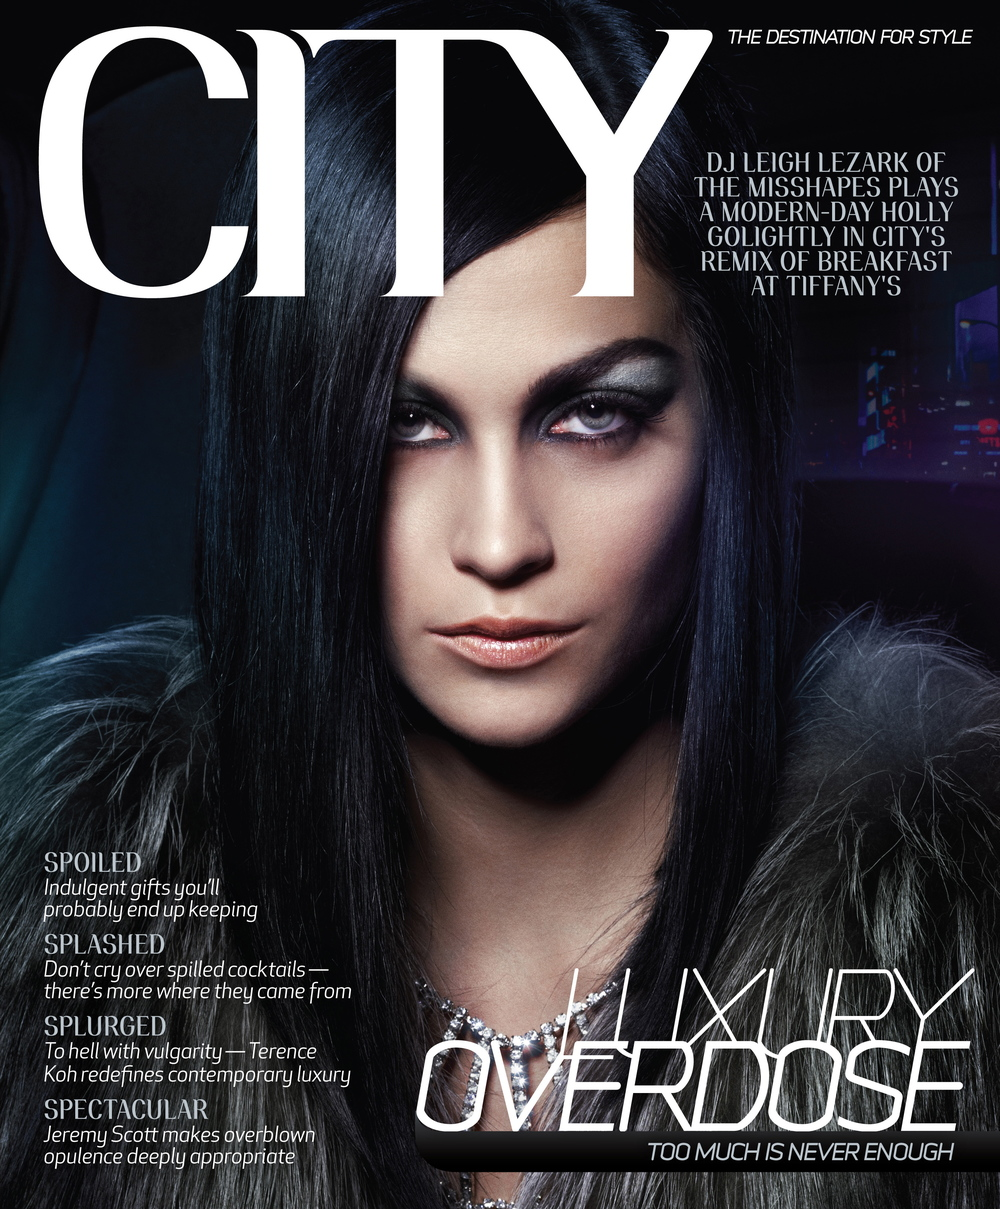 "Covers, Fashion Editorials, Features, and Front-of-Book editorial pages for CITY throughout 2007 – 2009 in its prior format of 9 x 10.875"" pages.   As the Art Director, I was given the opportunity to redesign the magazine in addition to being responsible for monthly page layouts, custom type treatments and the sequencing of images."